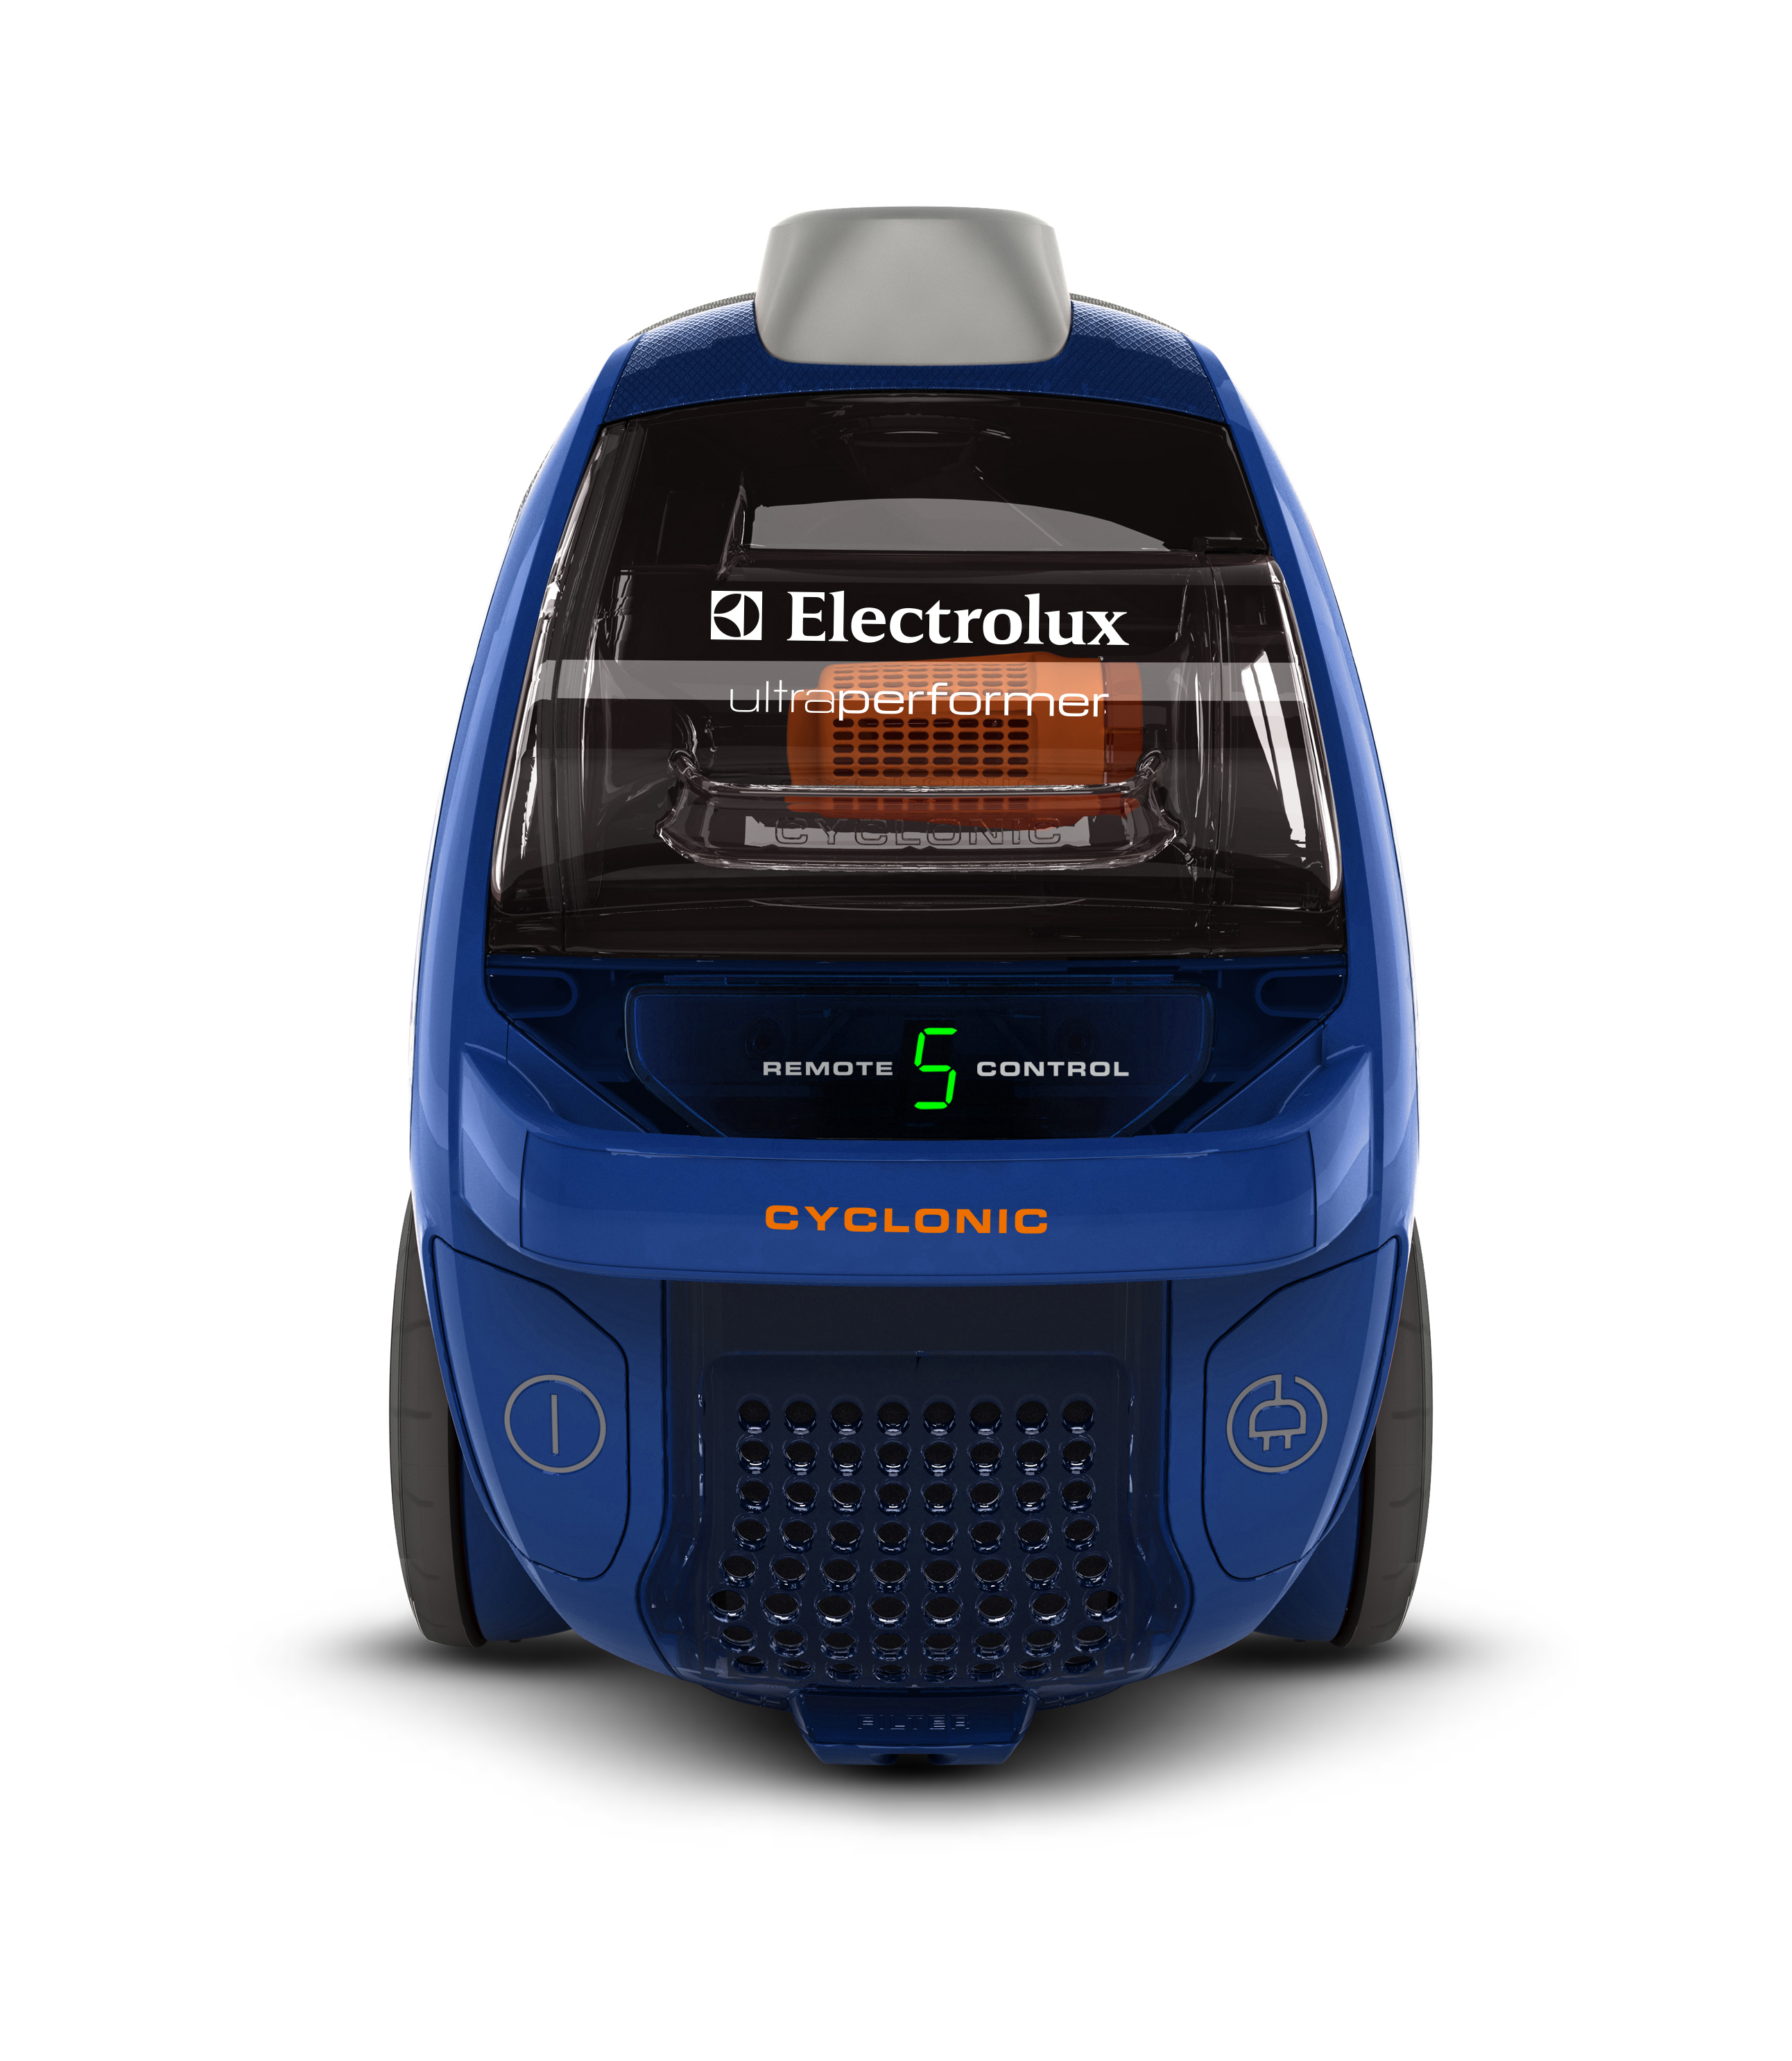 Electrolux Ultra Performer